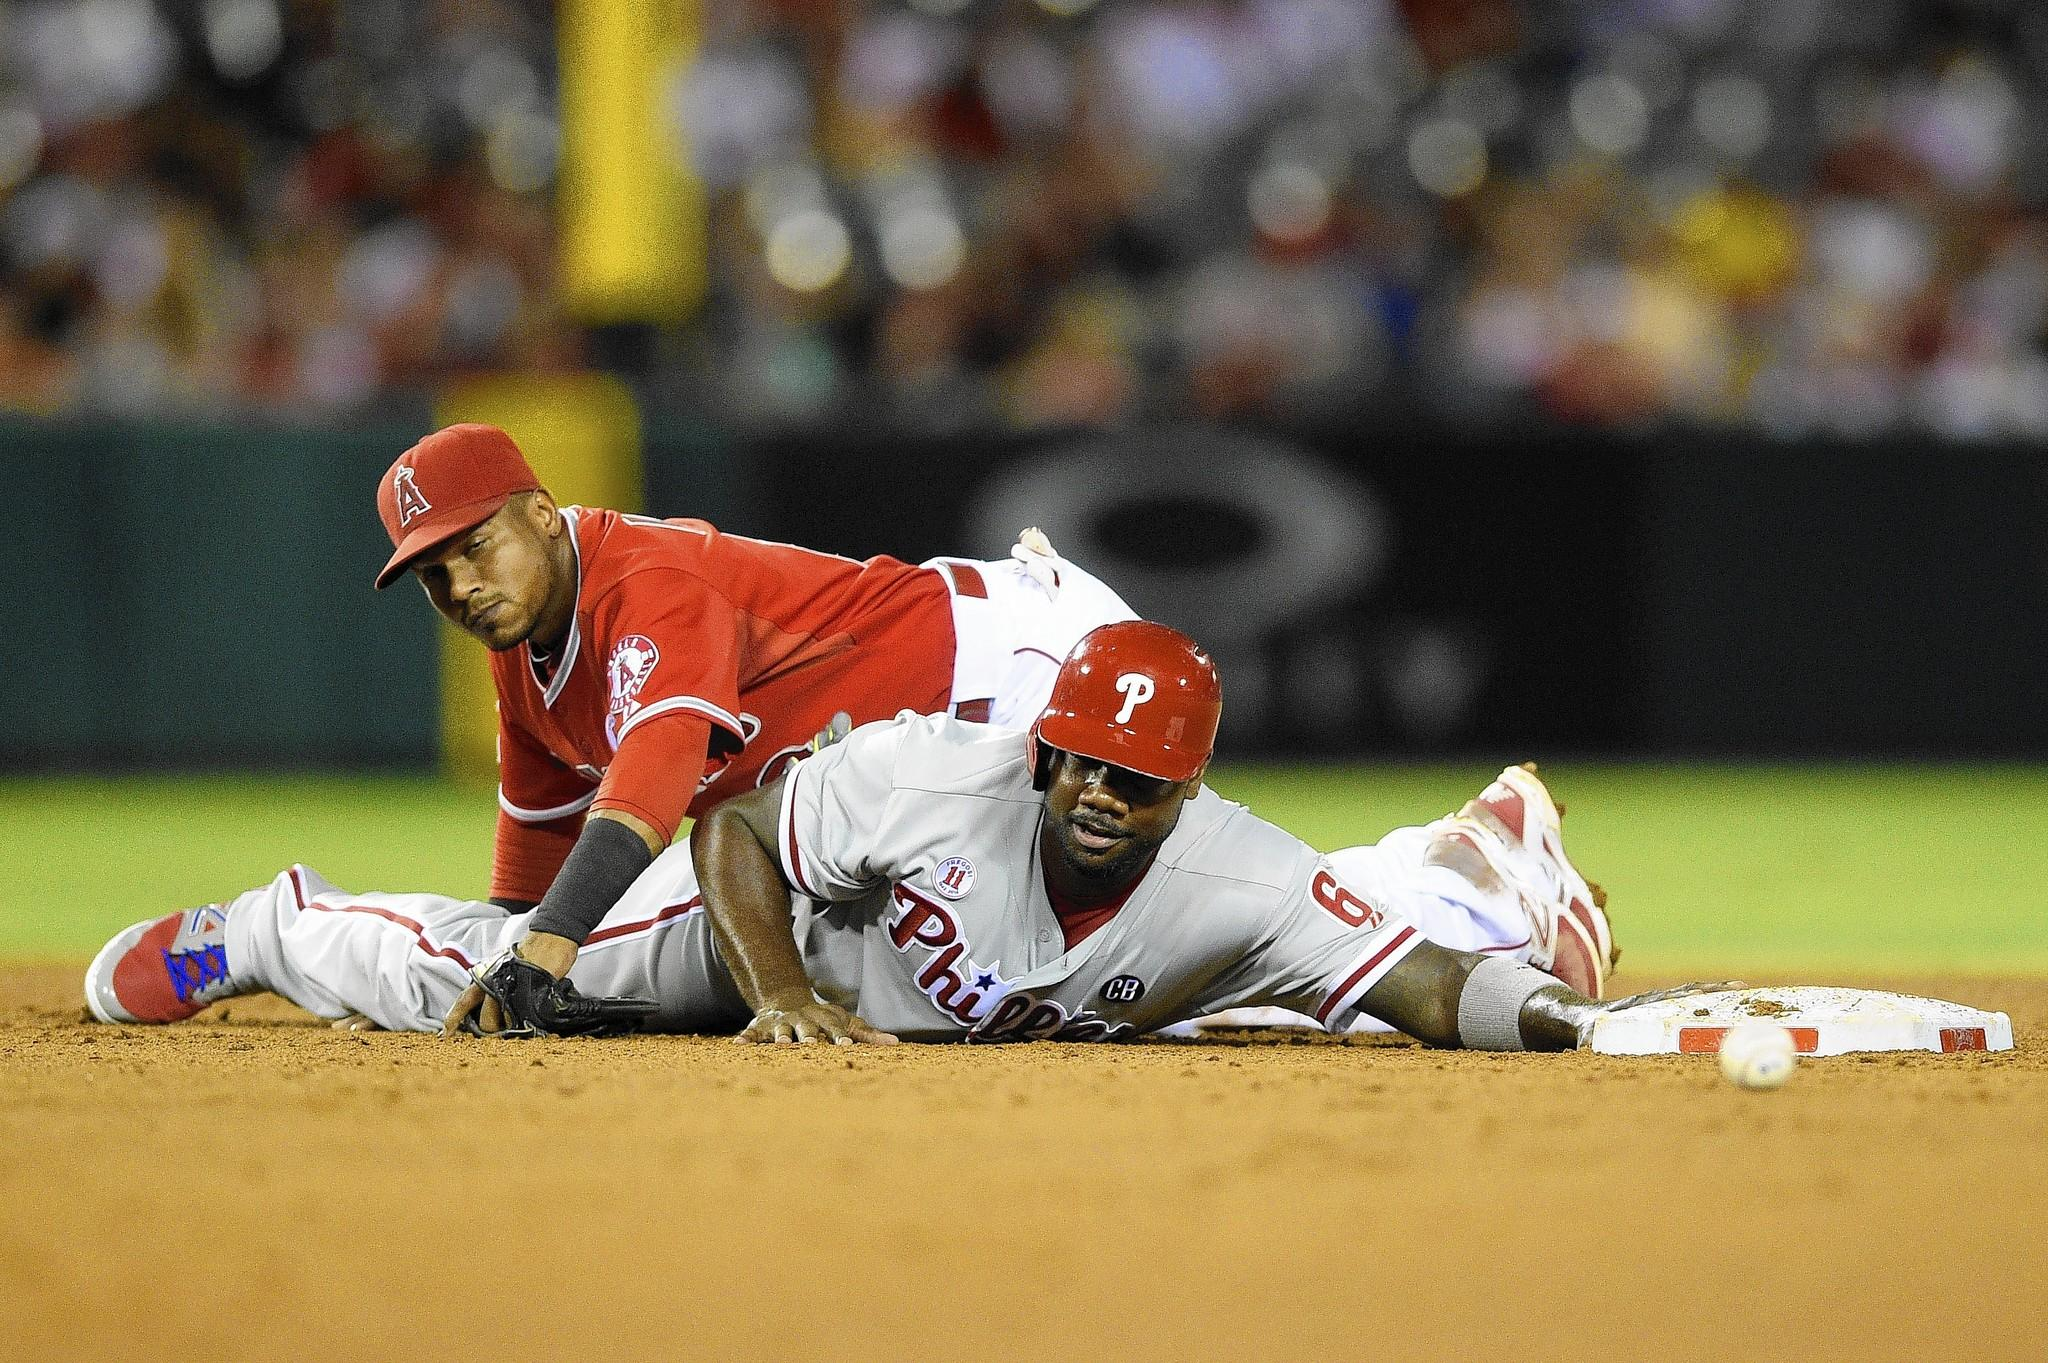 Los Angeles Angels shortstop Erick Aybar (top) is unable to catch an attempted pickoff throw as Philadelphia Phillies designated hitter Ryan Howard dives back to second base during the sixth inning at Angel Stadium of Anaheim.